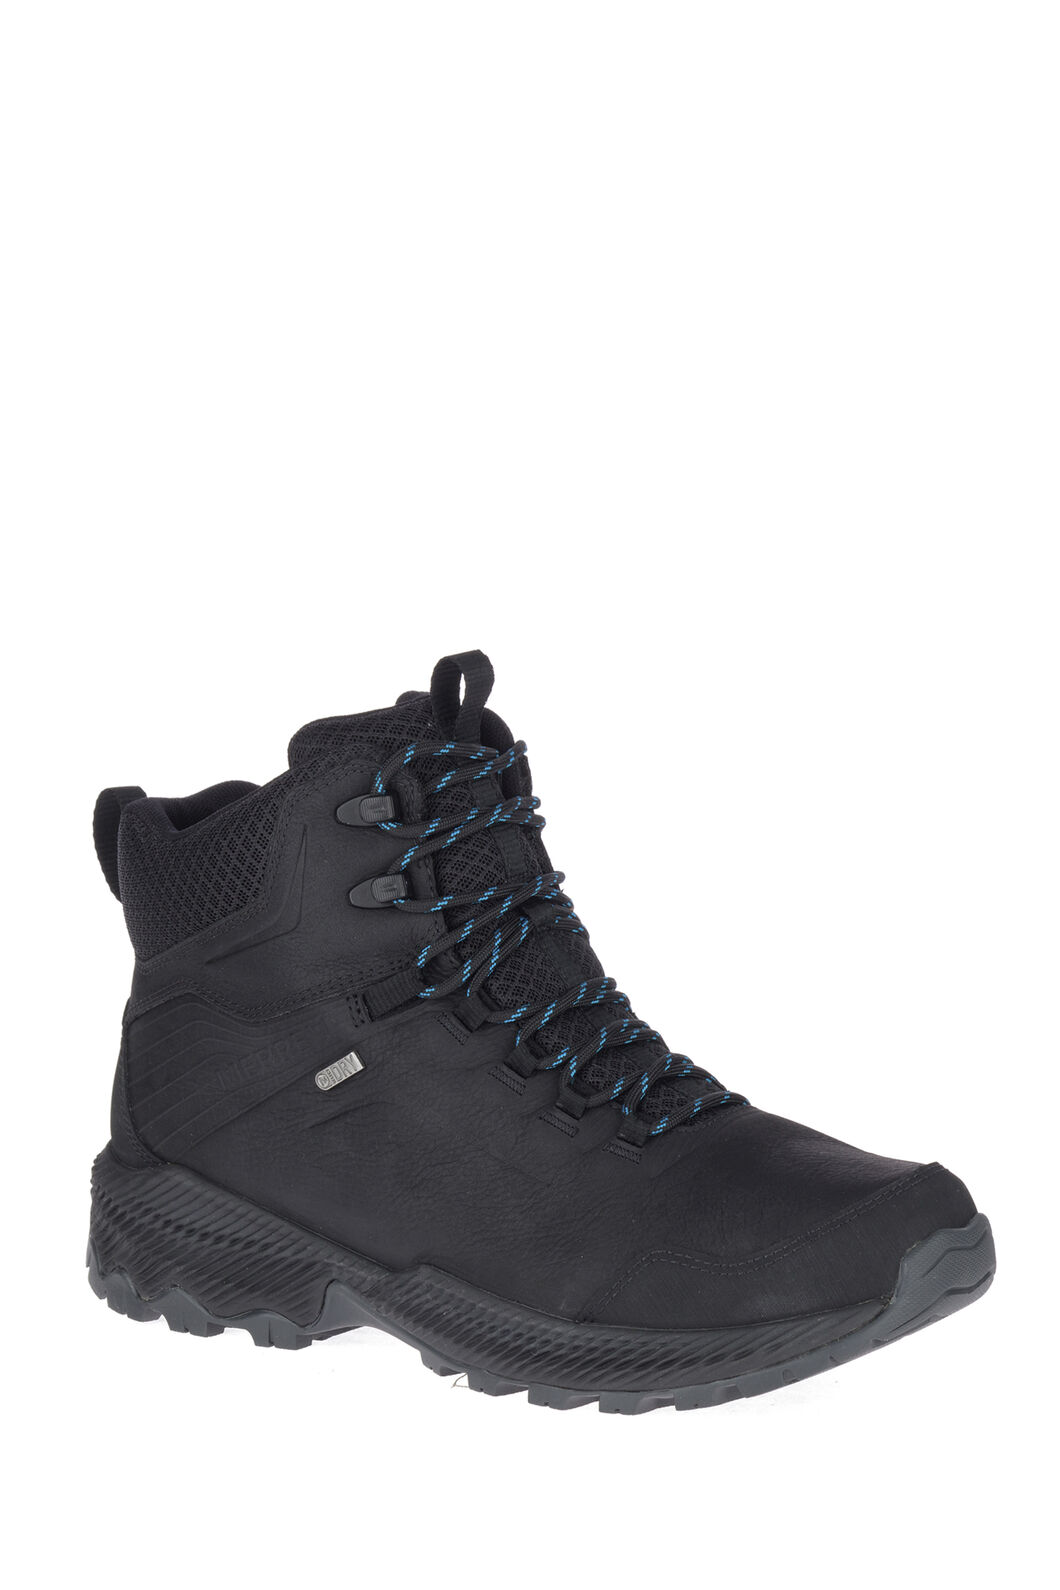 Merrell Forestbound Mid WP Boots — Men's, Black, hi-res